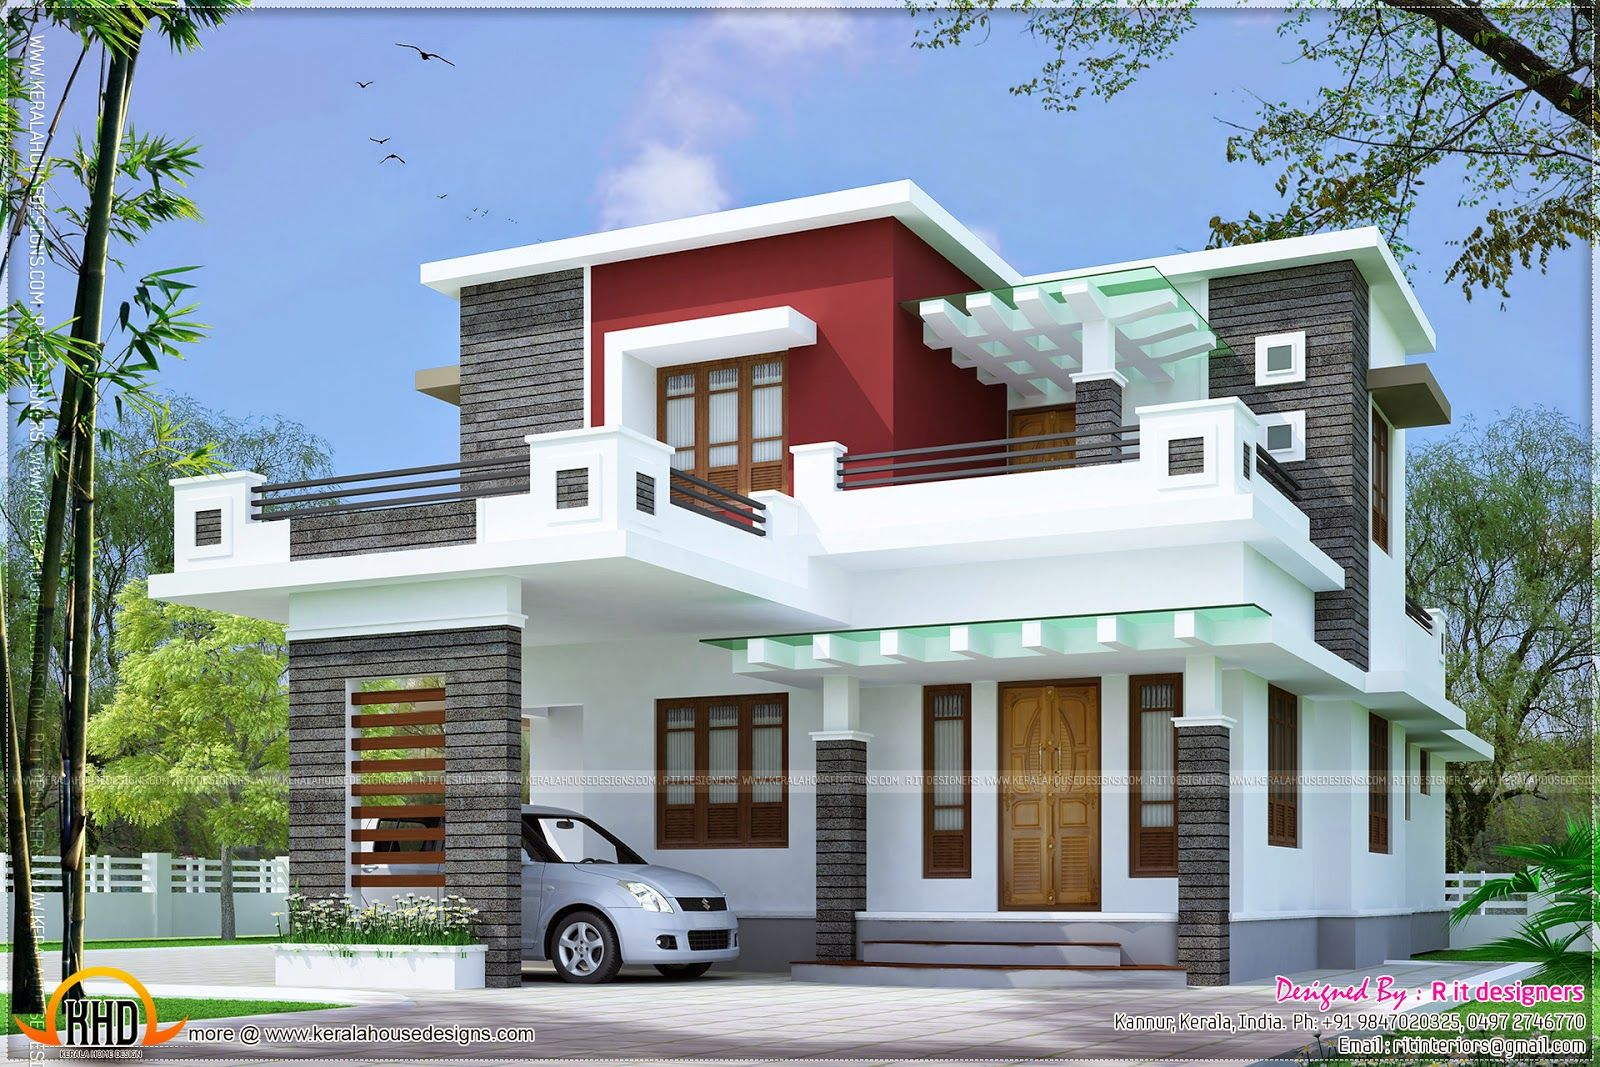 Free double storey house plans flat roof google search for Home designs double floor